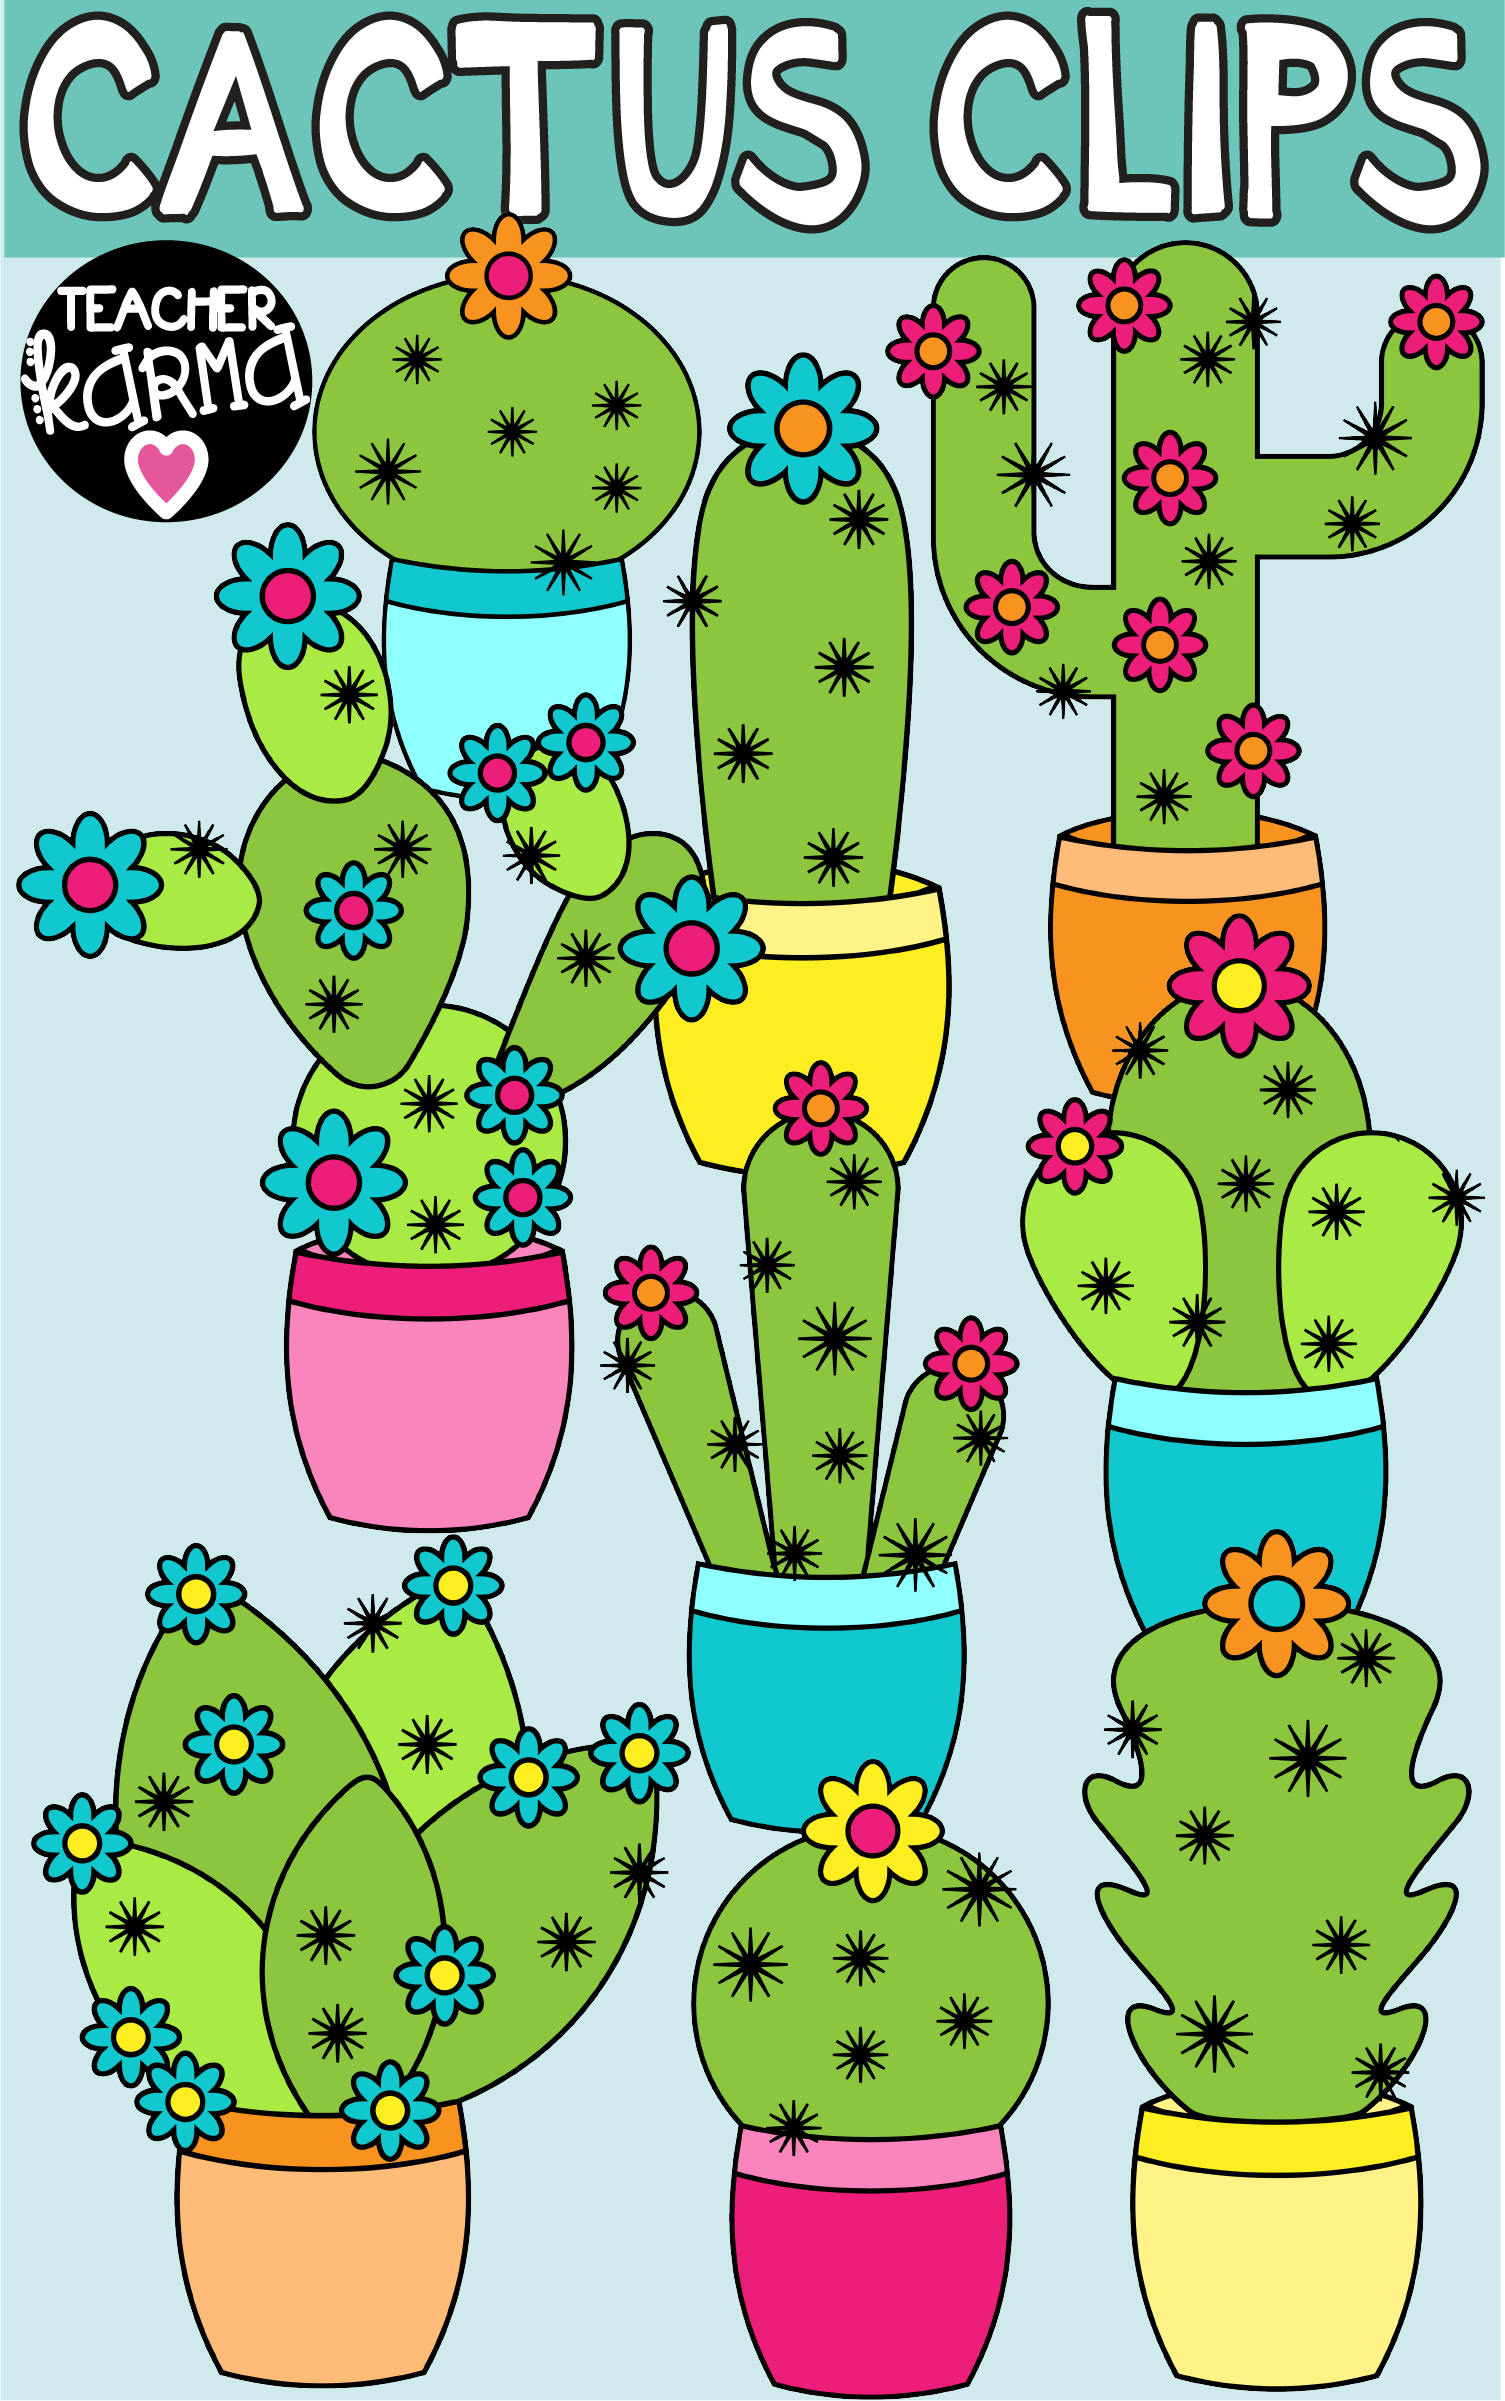 small resolution of cactus clipart is perfect for classroom decor teacher organization or to create products to sell on tpt cacti graphics are ok for commercial use